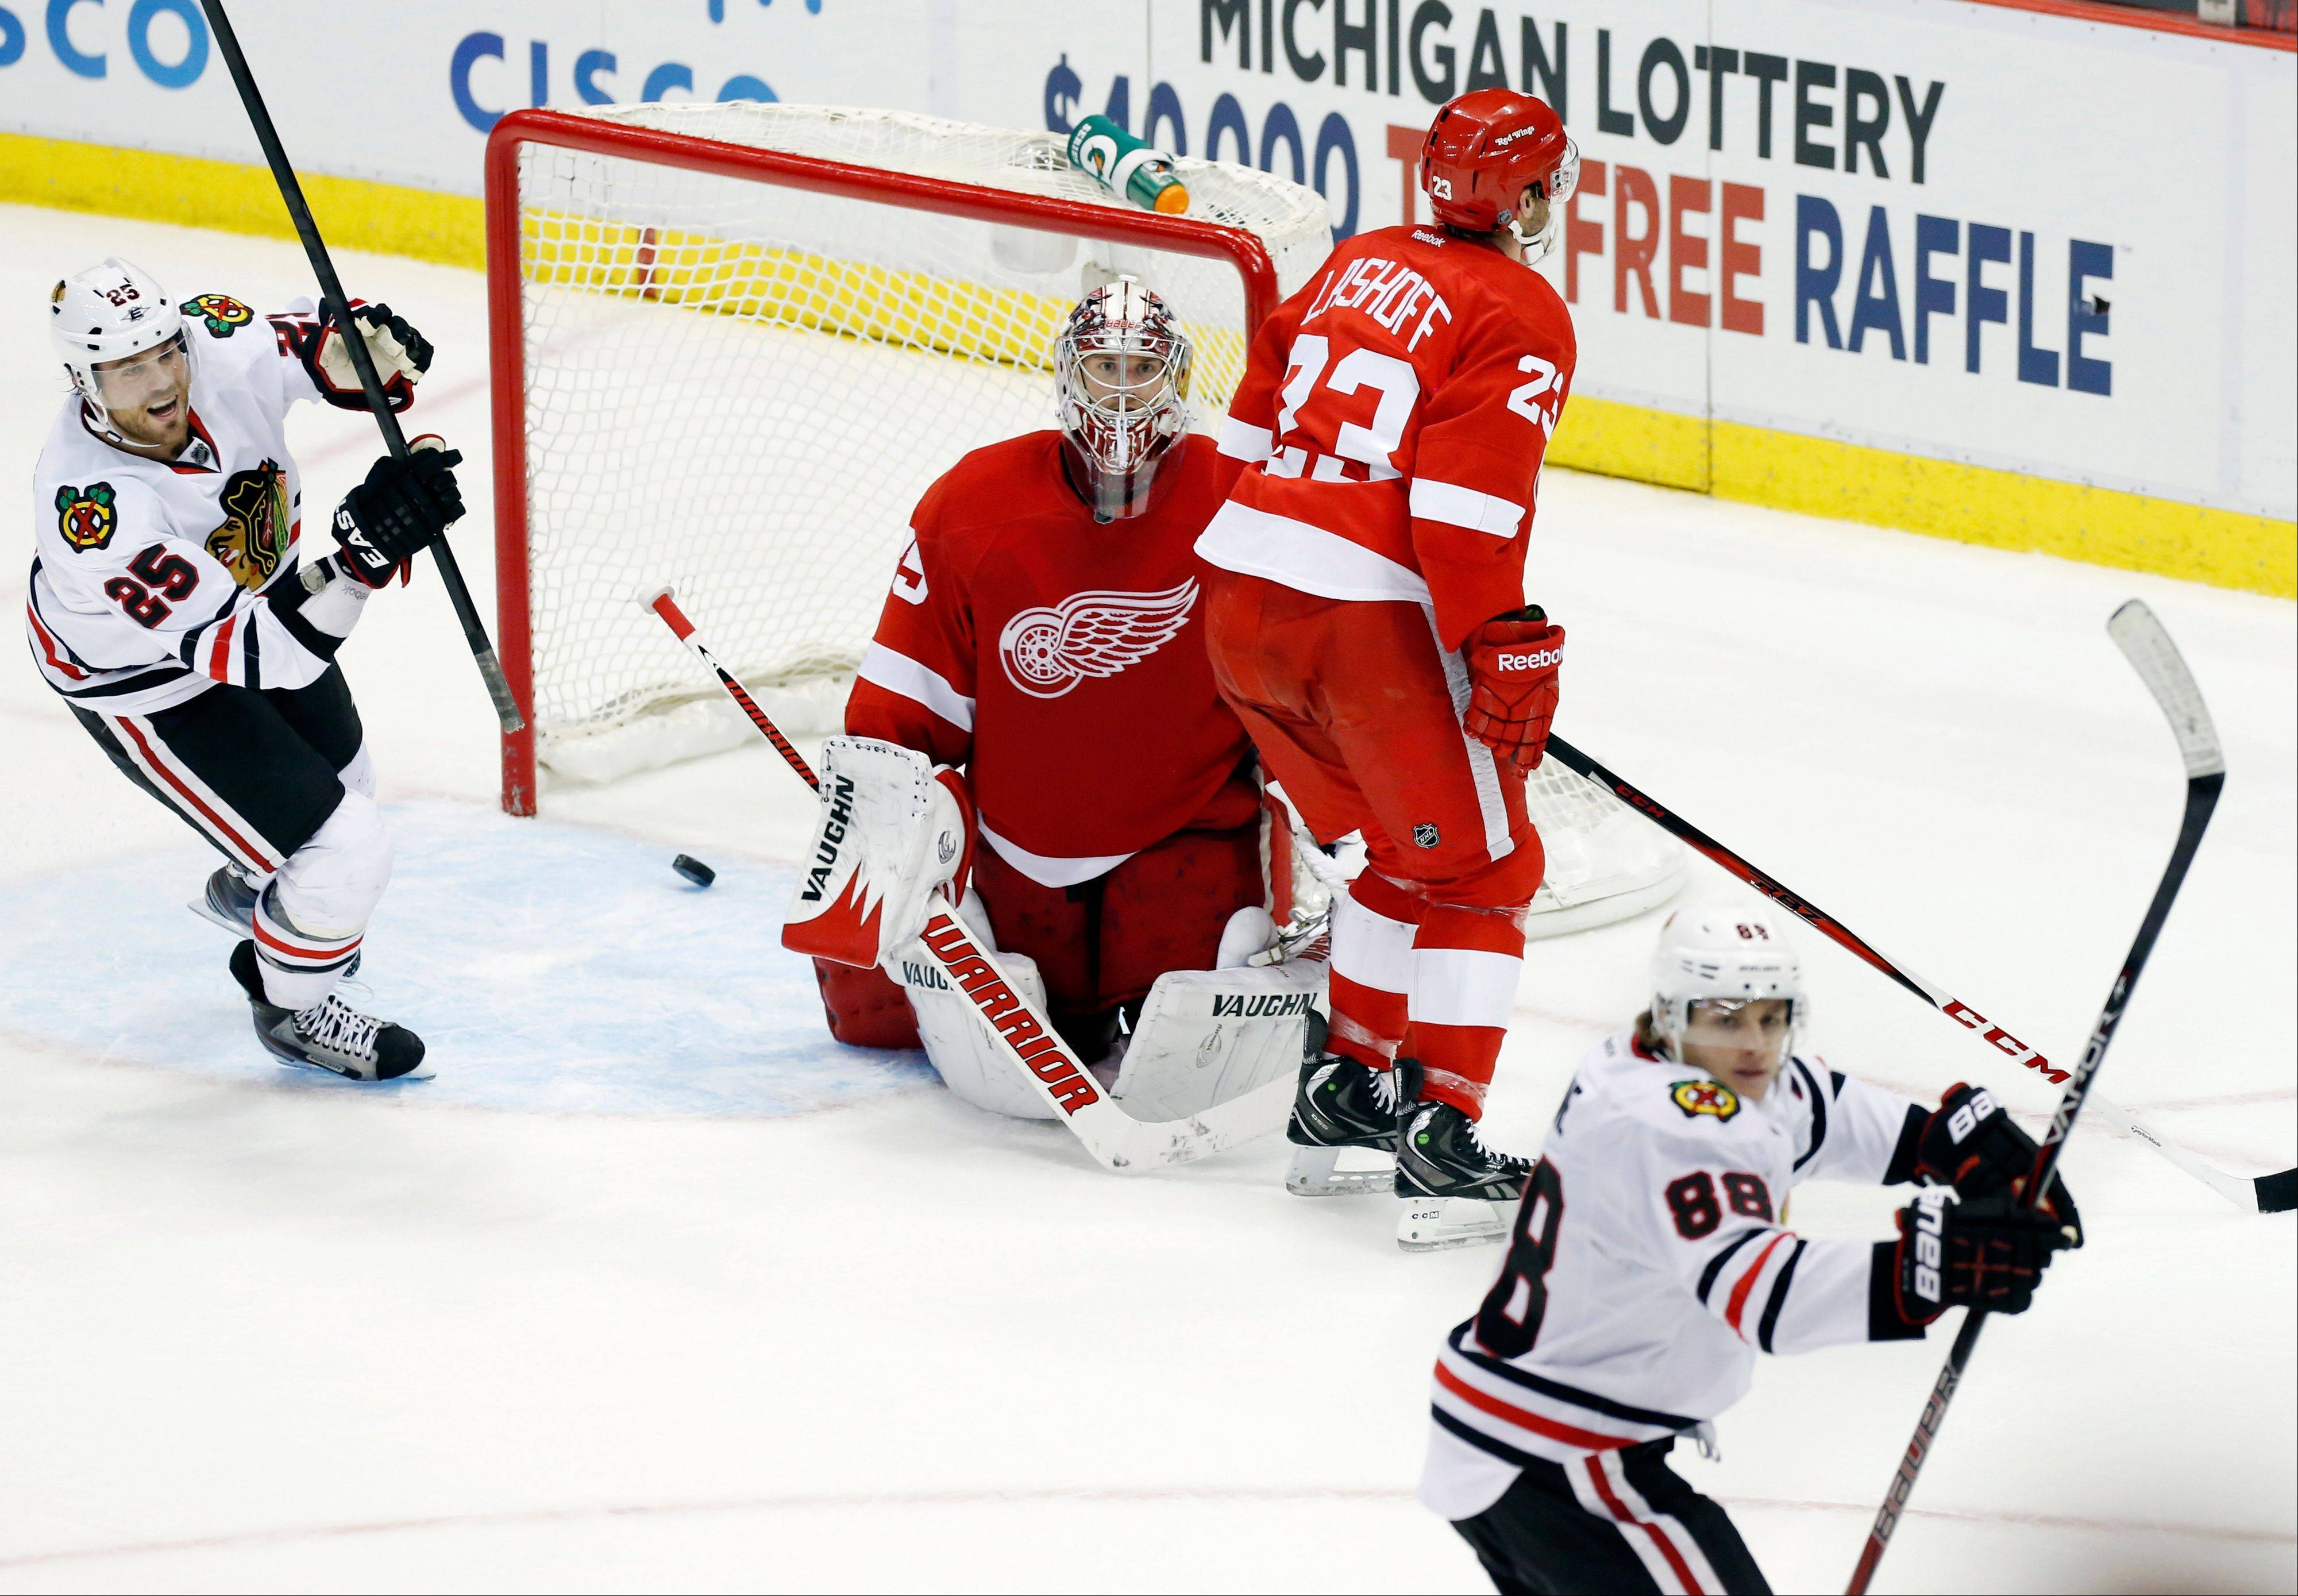 Blackhawks right wing Viktor Stalberg (25) celebrates a goal by teammate Patrick Kane (88) Sunday against Detroit Red Wings goalie Jimmy Howard, center, and defenseman Brian Lashoff.